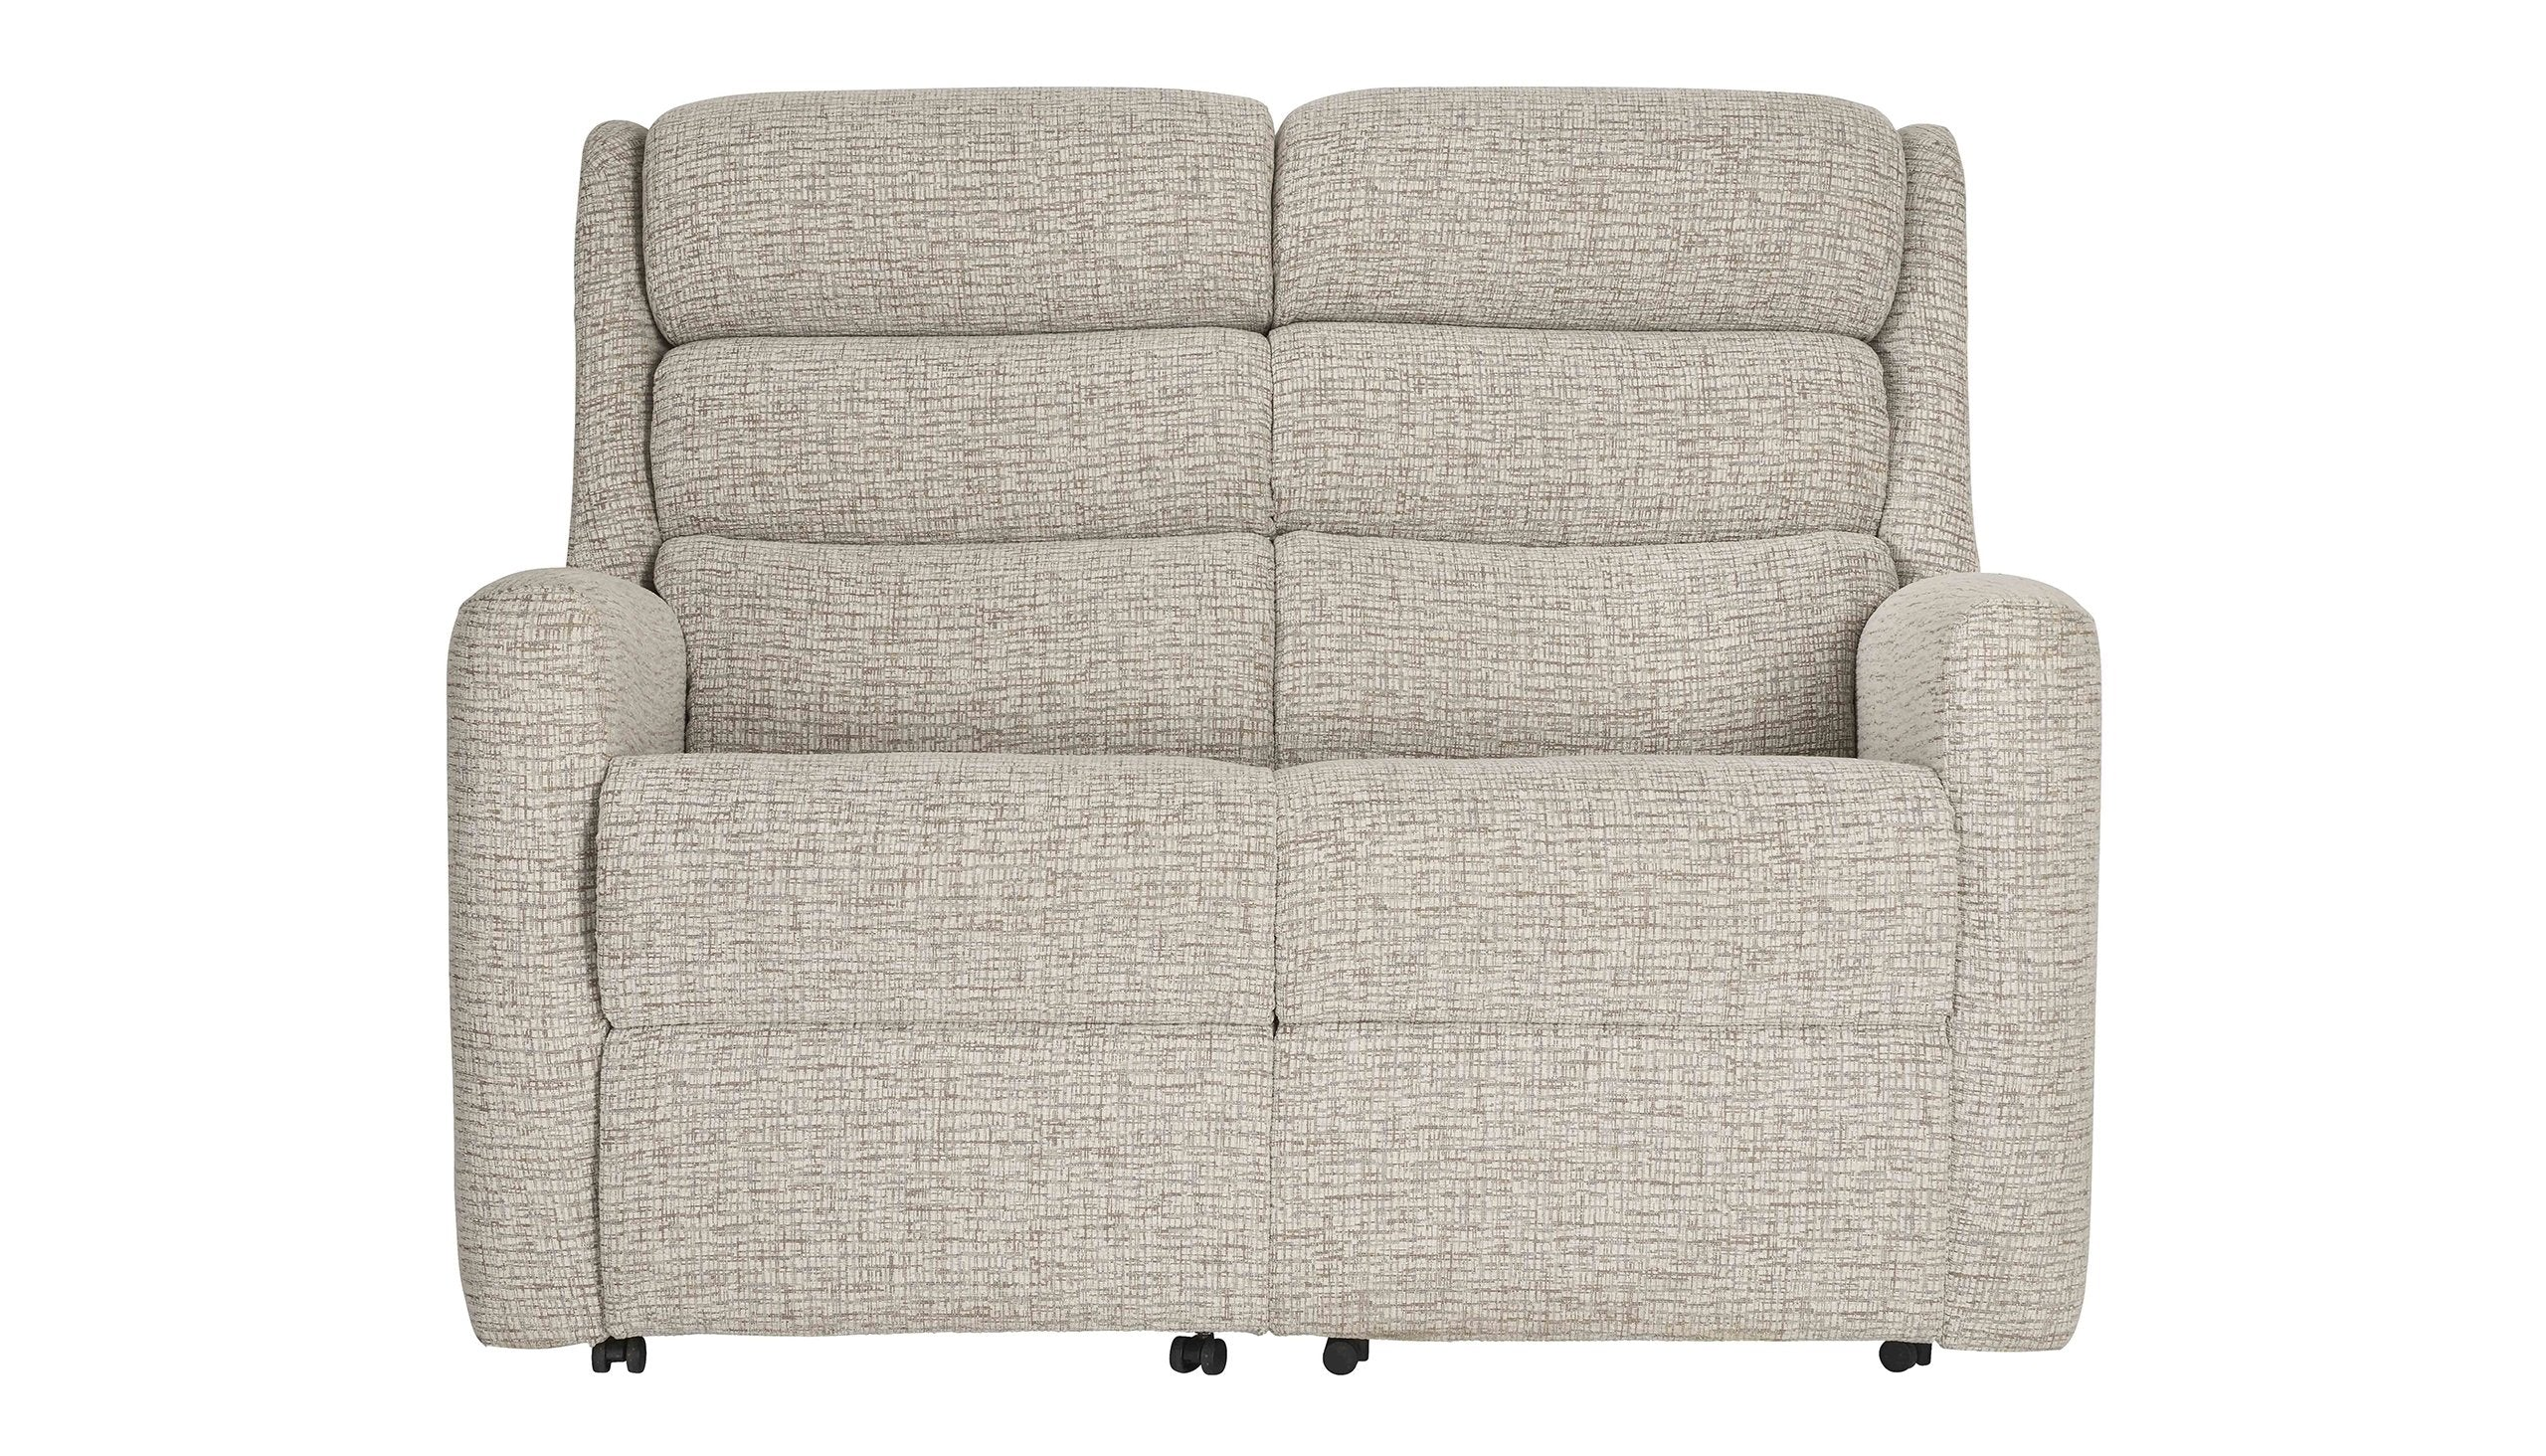 Celebrity Somersby 2 Seater Power Recliner Sofa - AHF Furniture & Carpets